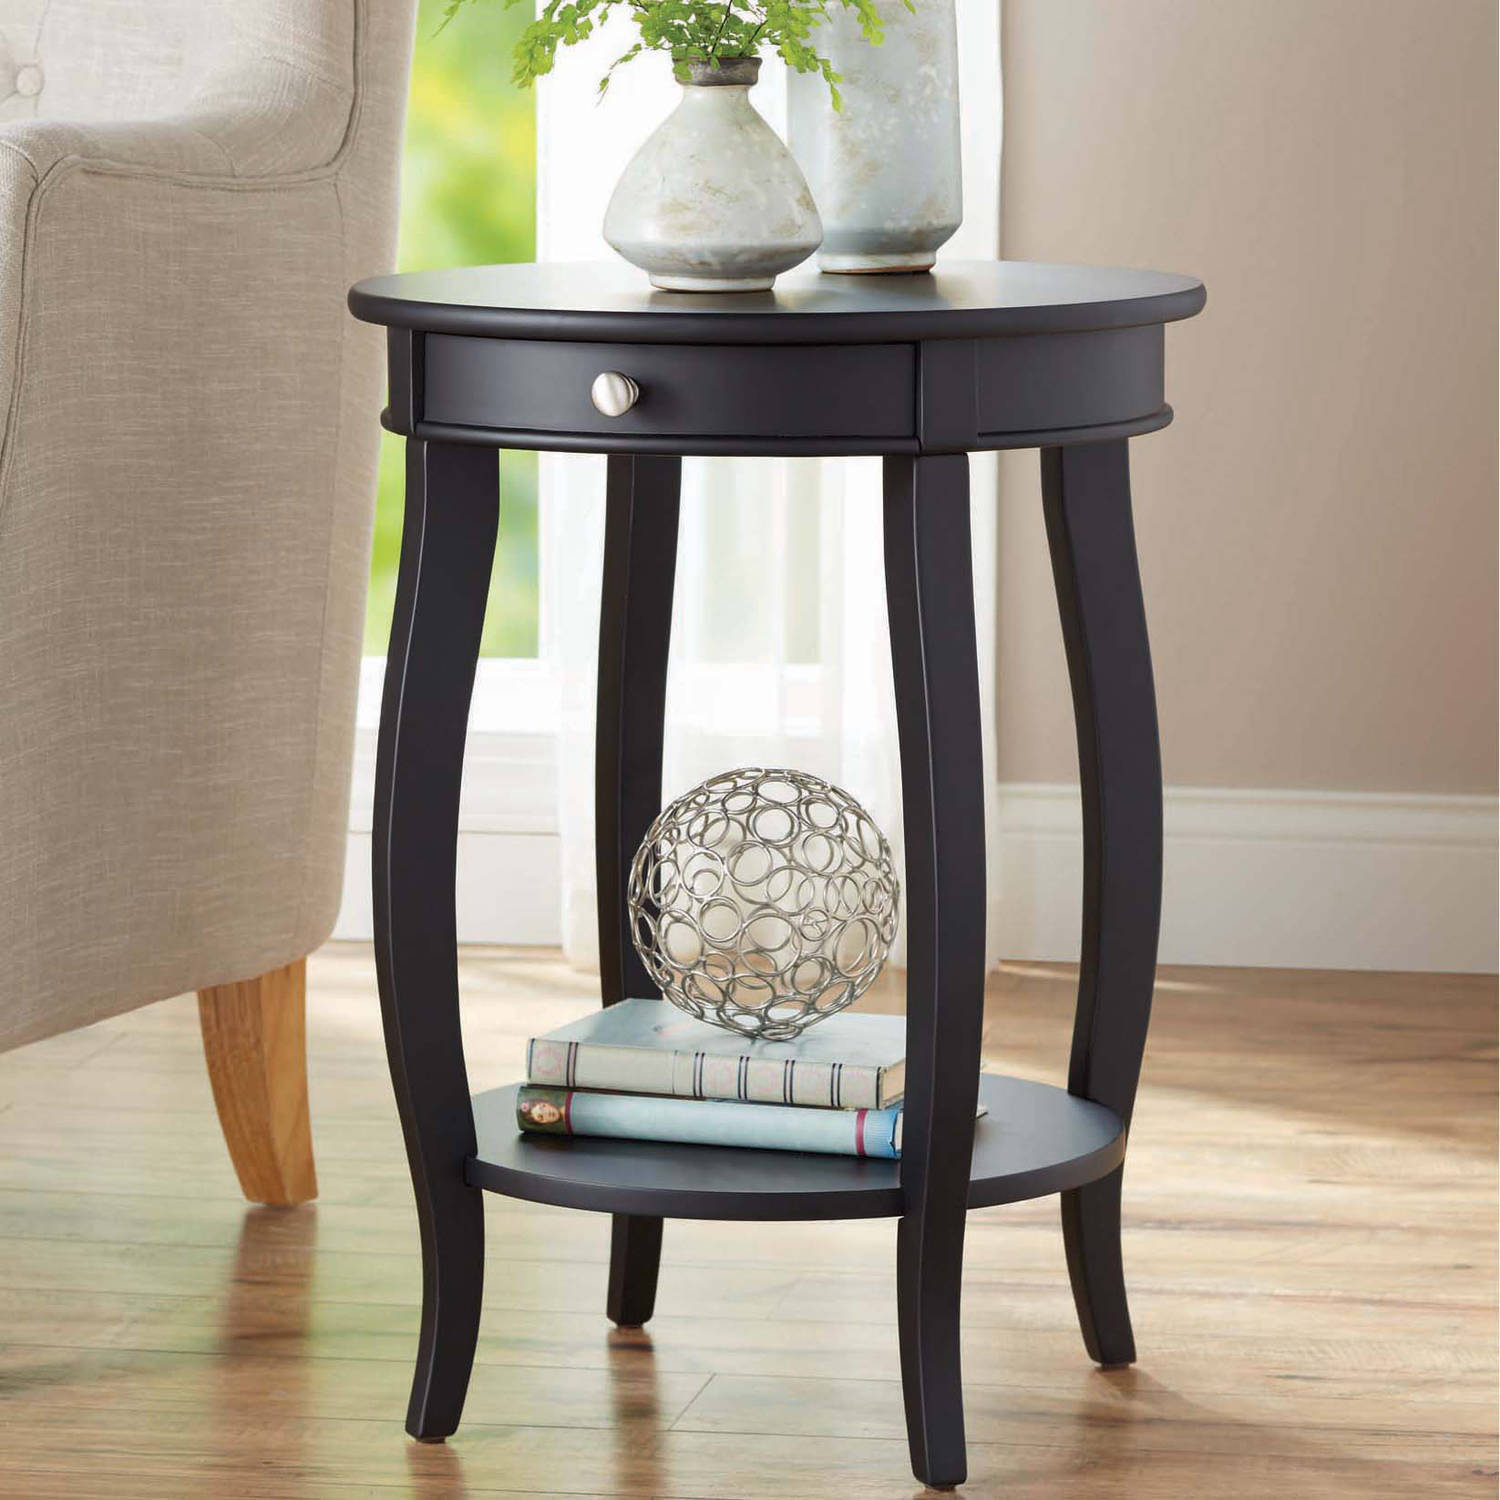 better homes gardens round accent table with drawer multiple decor colors metal chair legs red occasional rustic nest tables jcpenney slipcovers small kidney shaped resin coffee